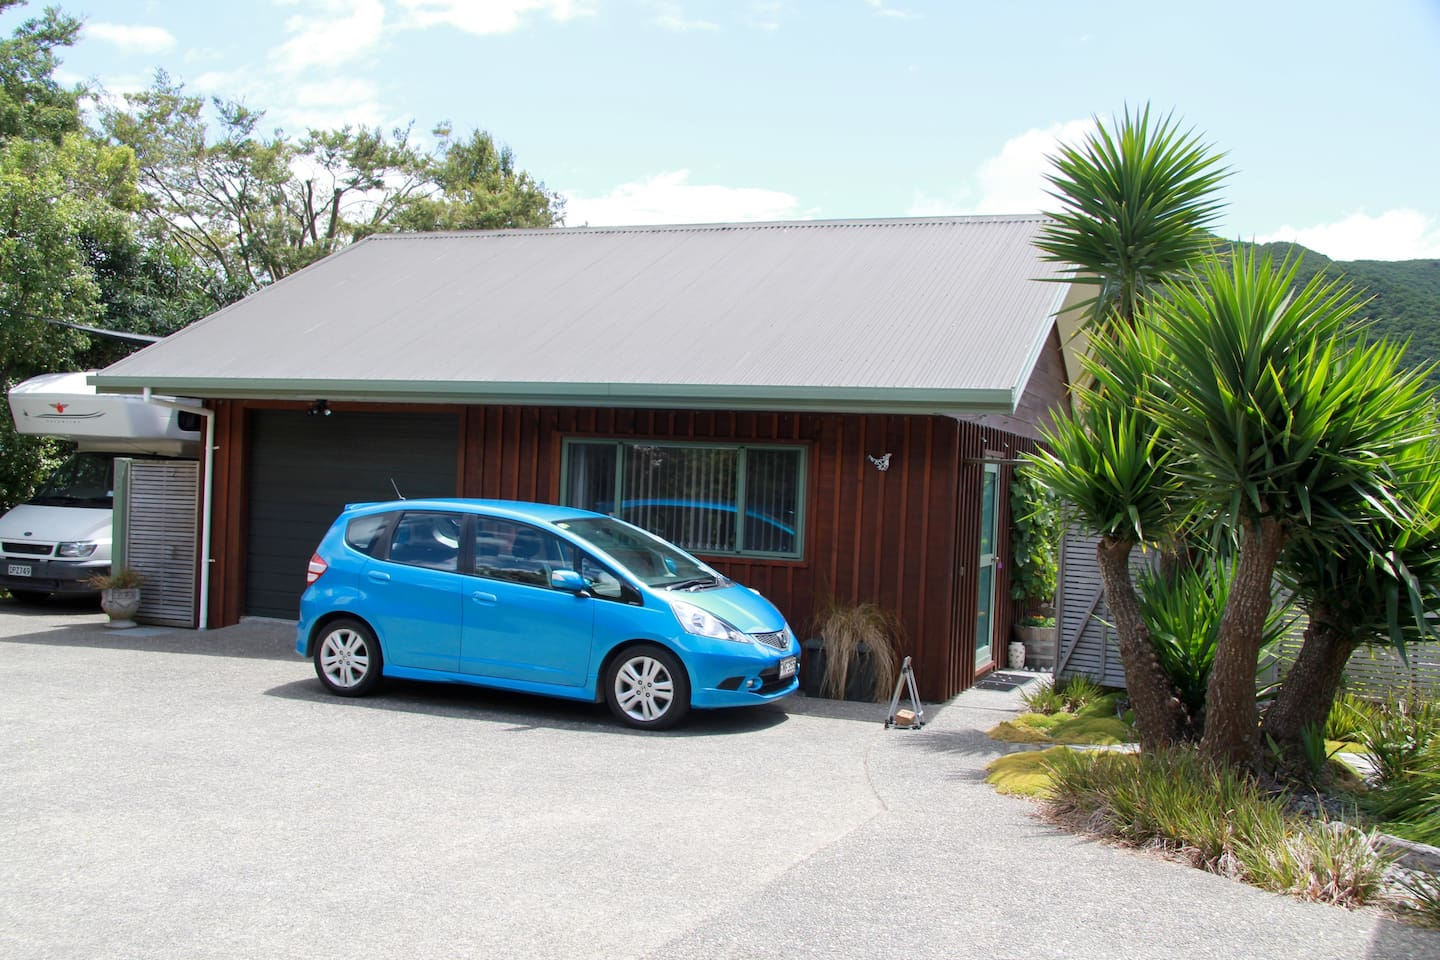 At the end of the tarsealed driveway, veer to the right to park (where the blue car is in the photo), outside your studio.  Your entrance door can be seen through the open gate.  Our house is separate and off to the right up a short cobbled path.